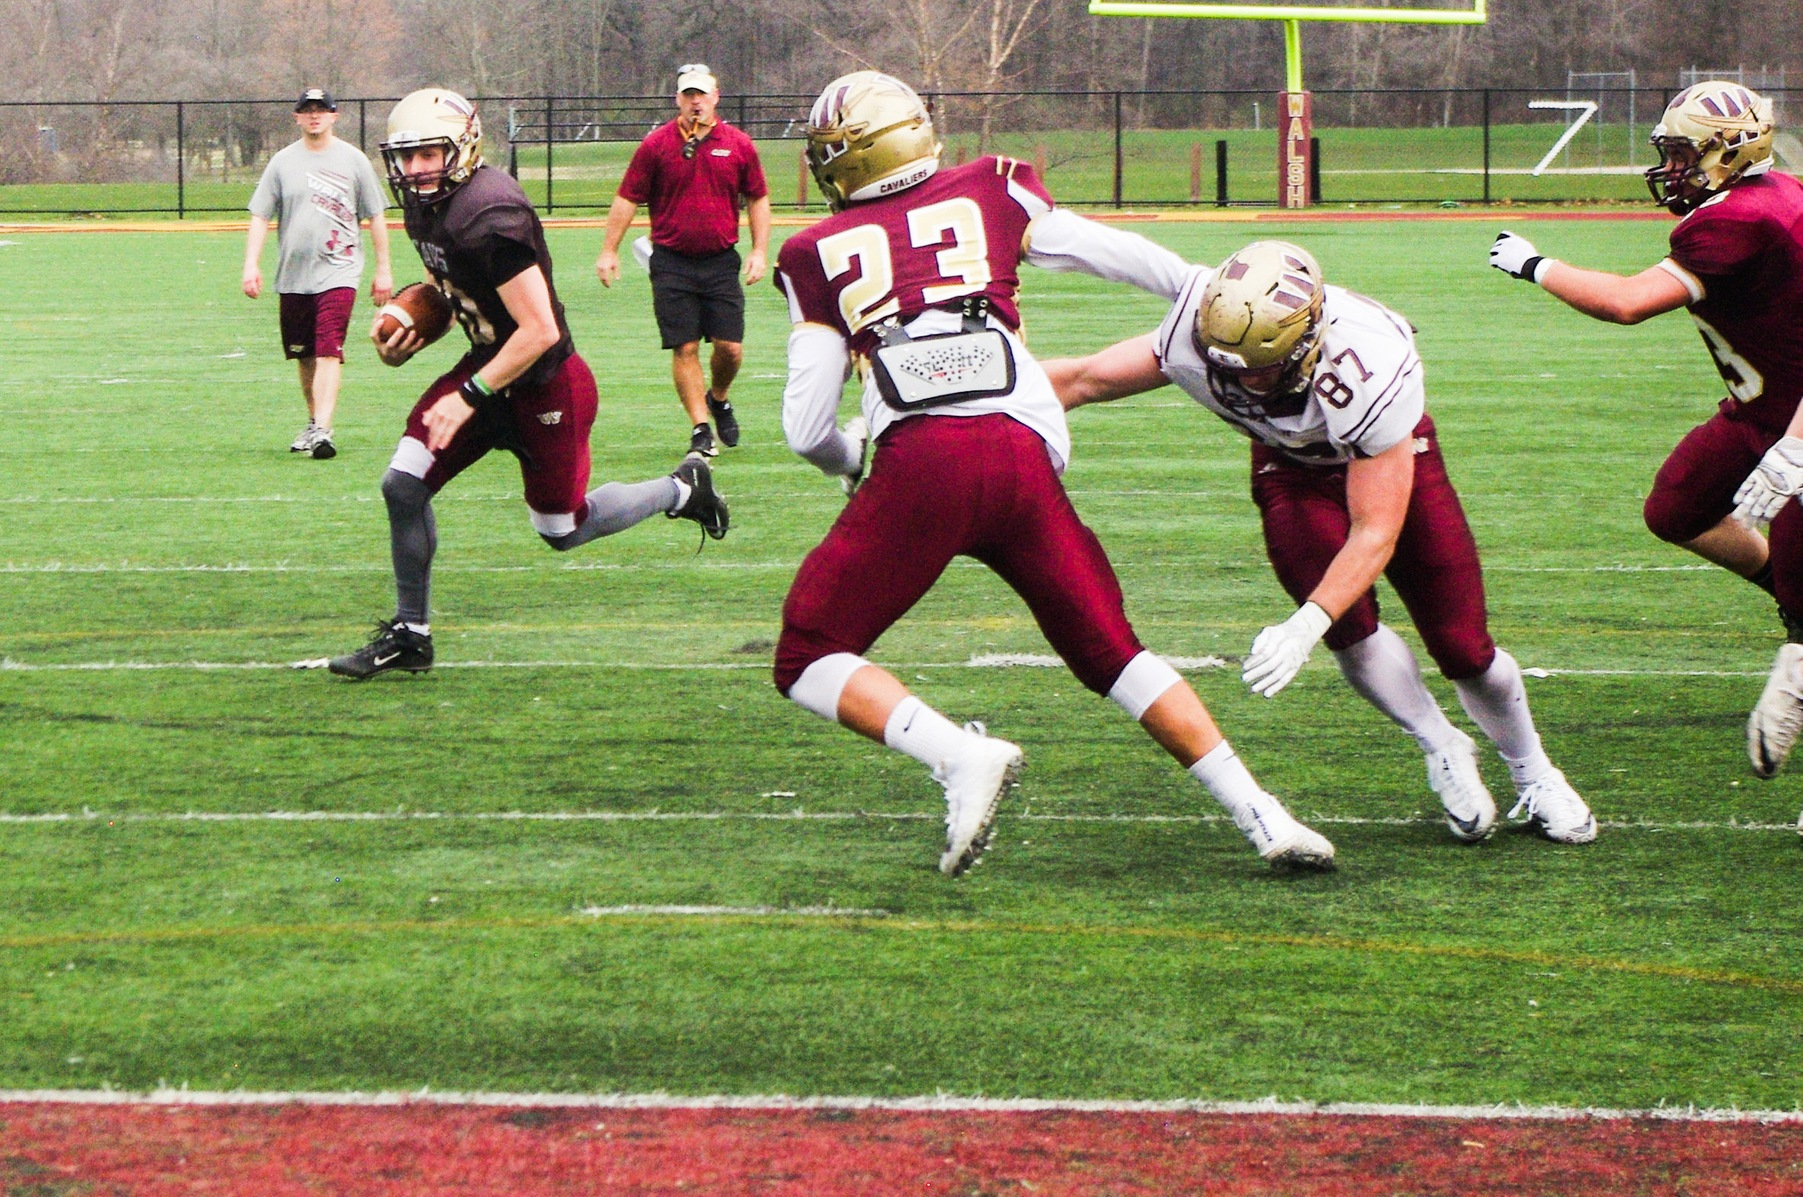 Gold Edges Maroon In Spring Game 29-27